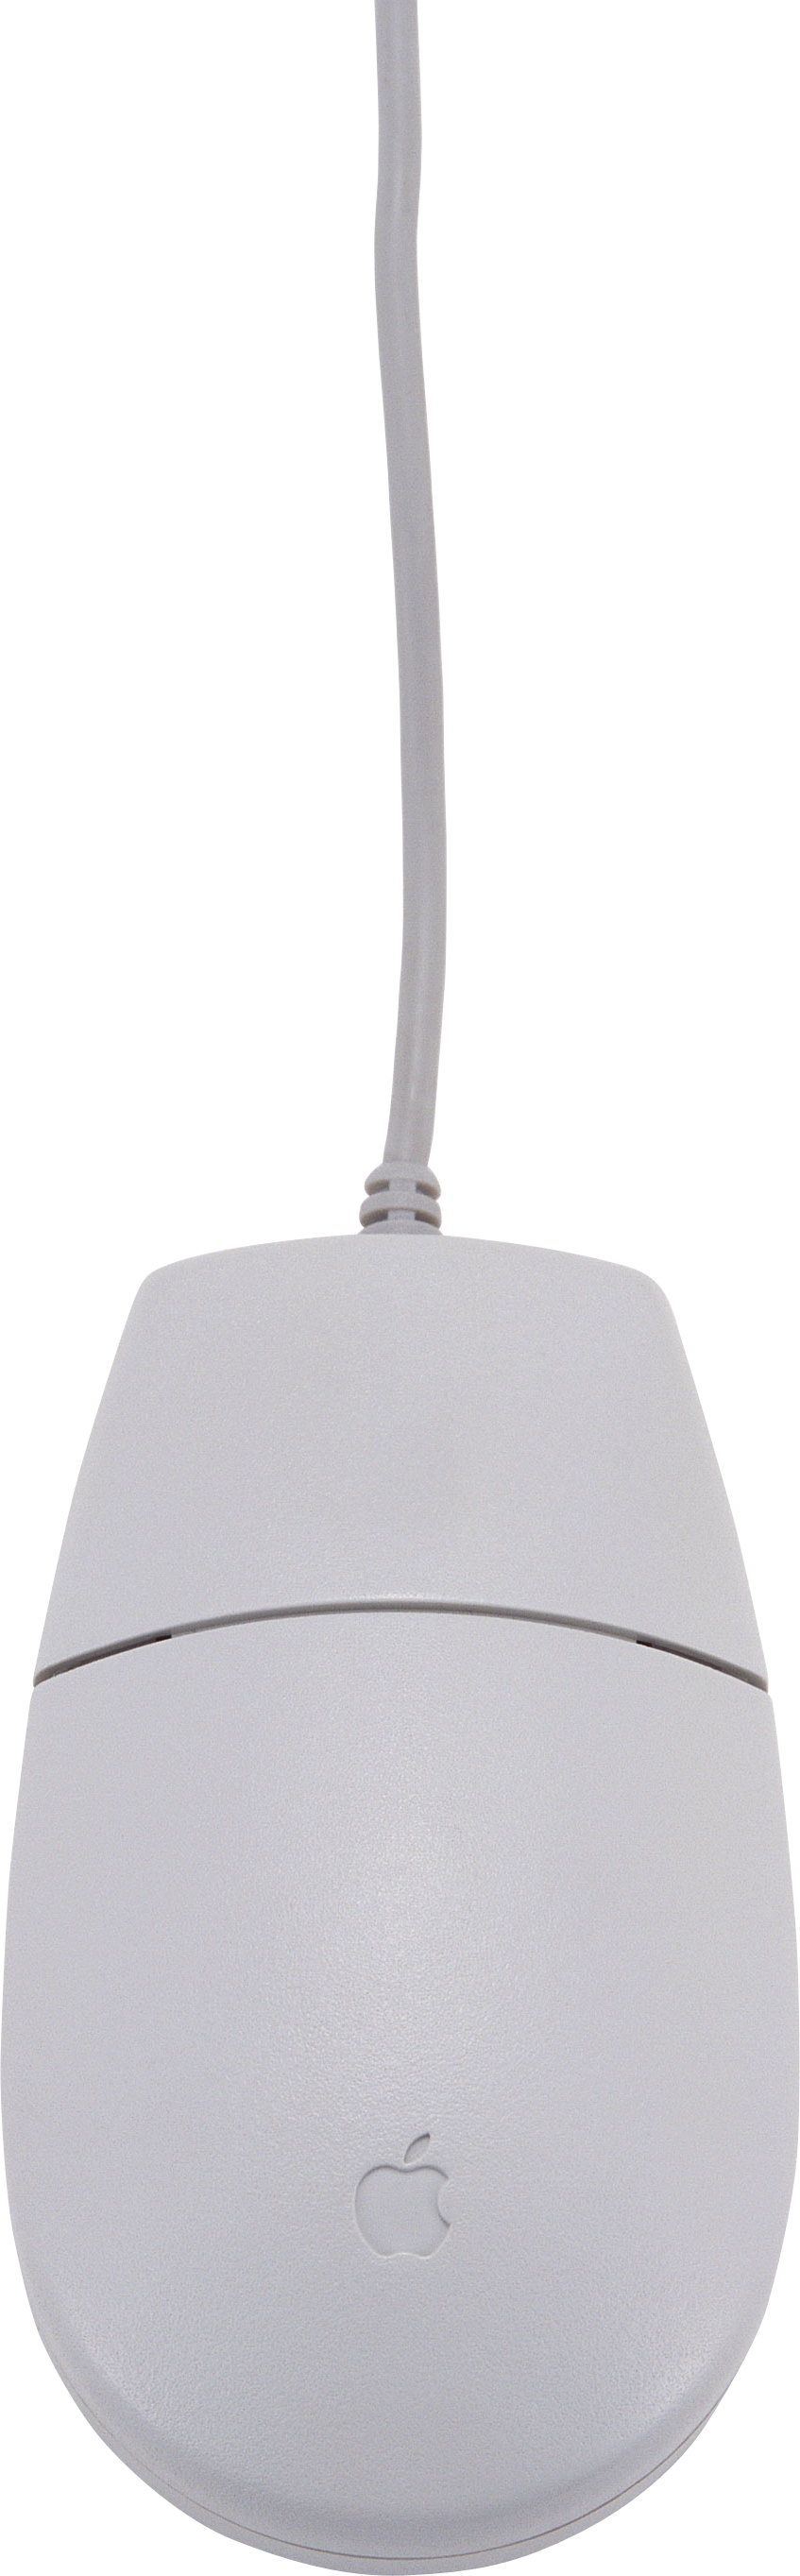 PC Mouse PNG Image